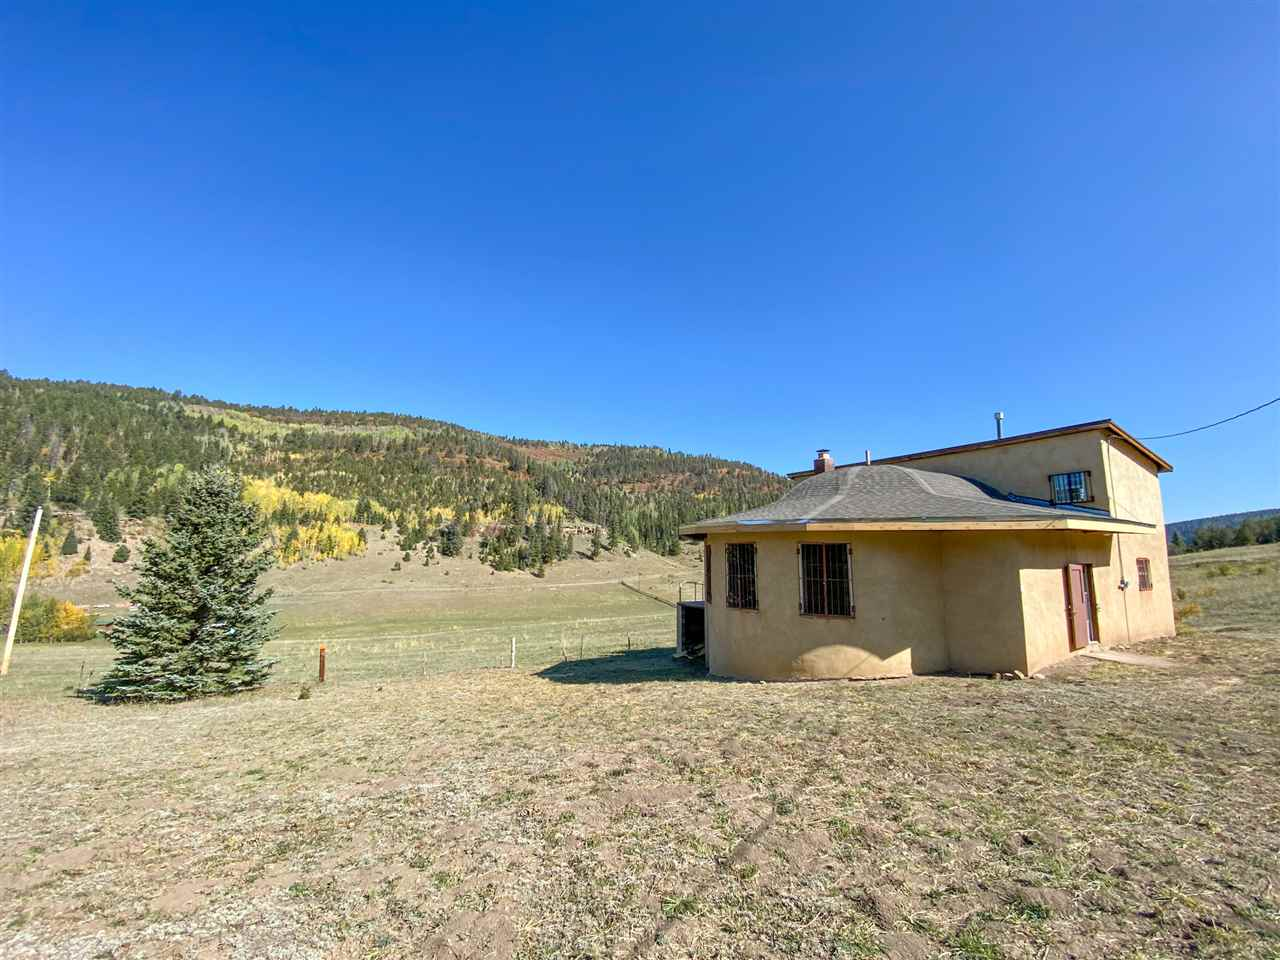 25 Cielo Vista Road, Vadito, NM 87579